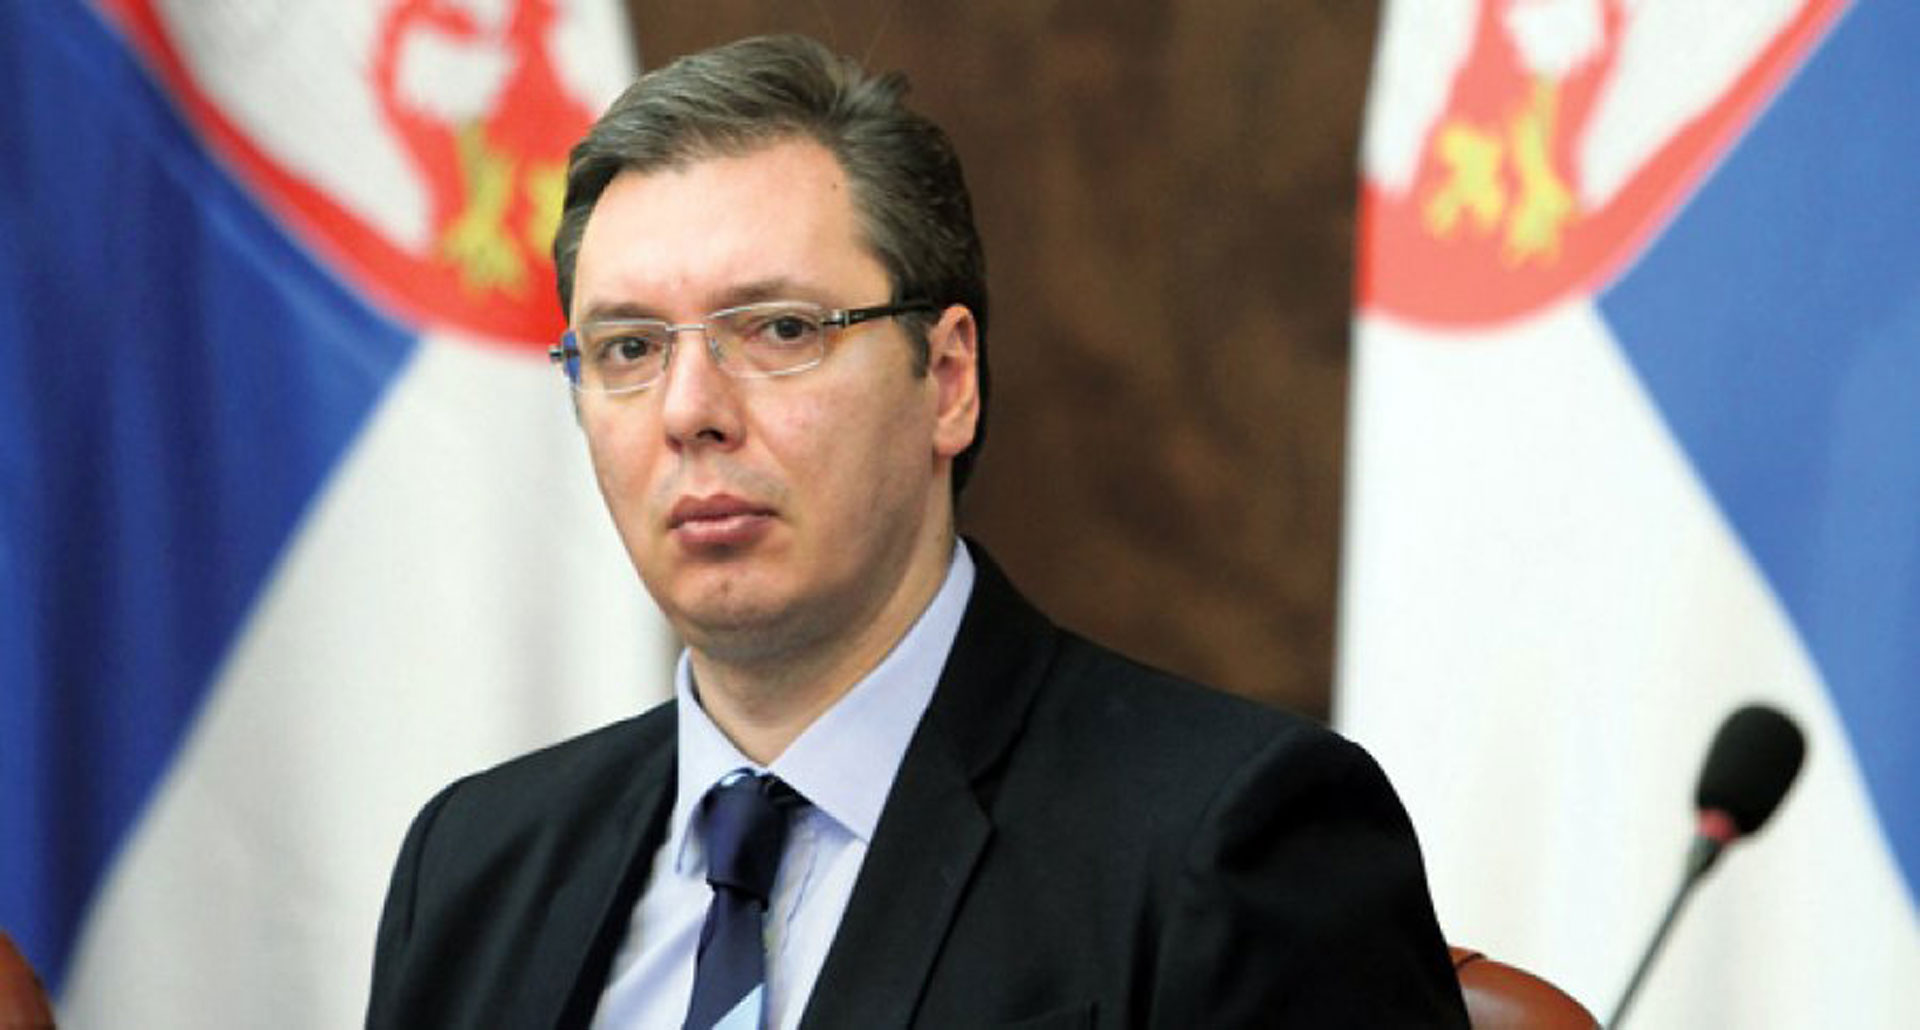 Aleksandr Vucic is well after heart-related concerns